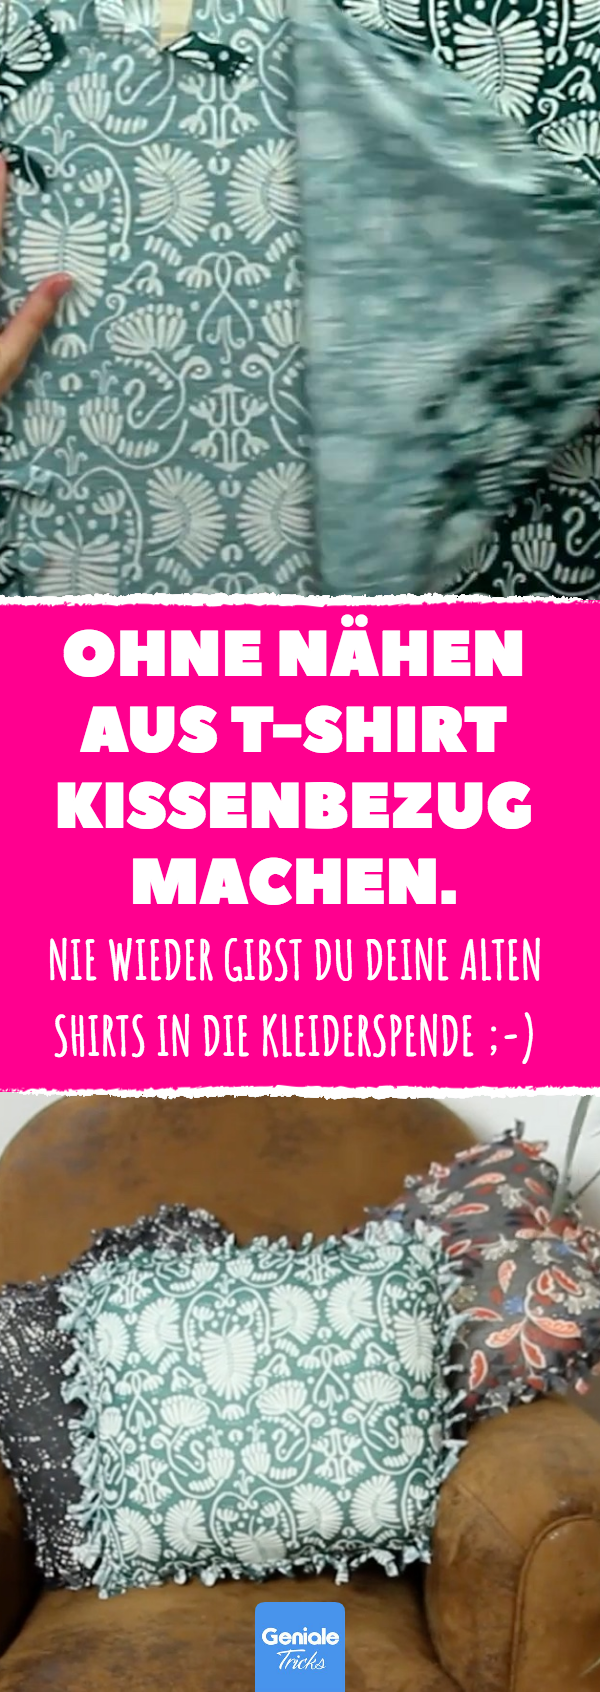 ohne n hen aus t shirt kissenbezug machen diy kissen n hen kissenbezug t shirt upcycling. Black Bedroom Furniture Sets. Home Design Ideas